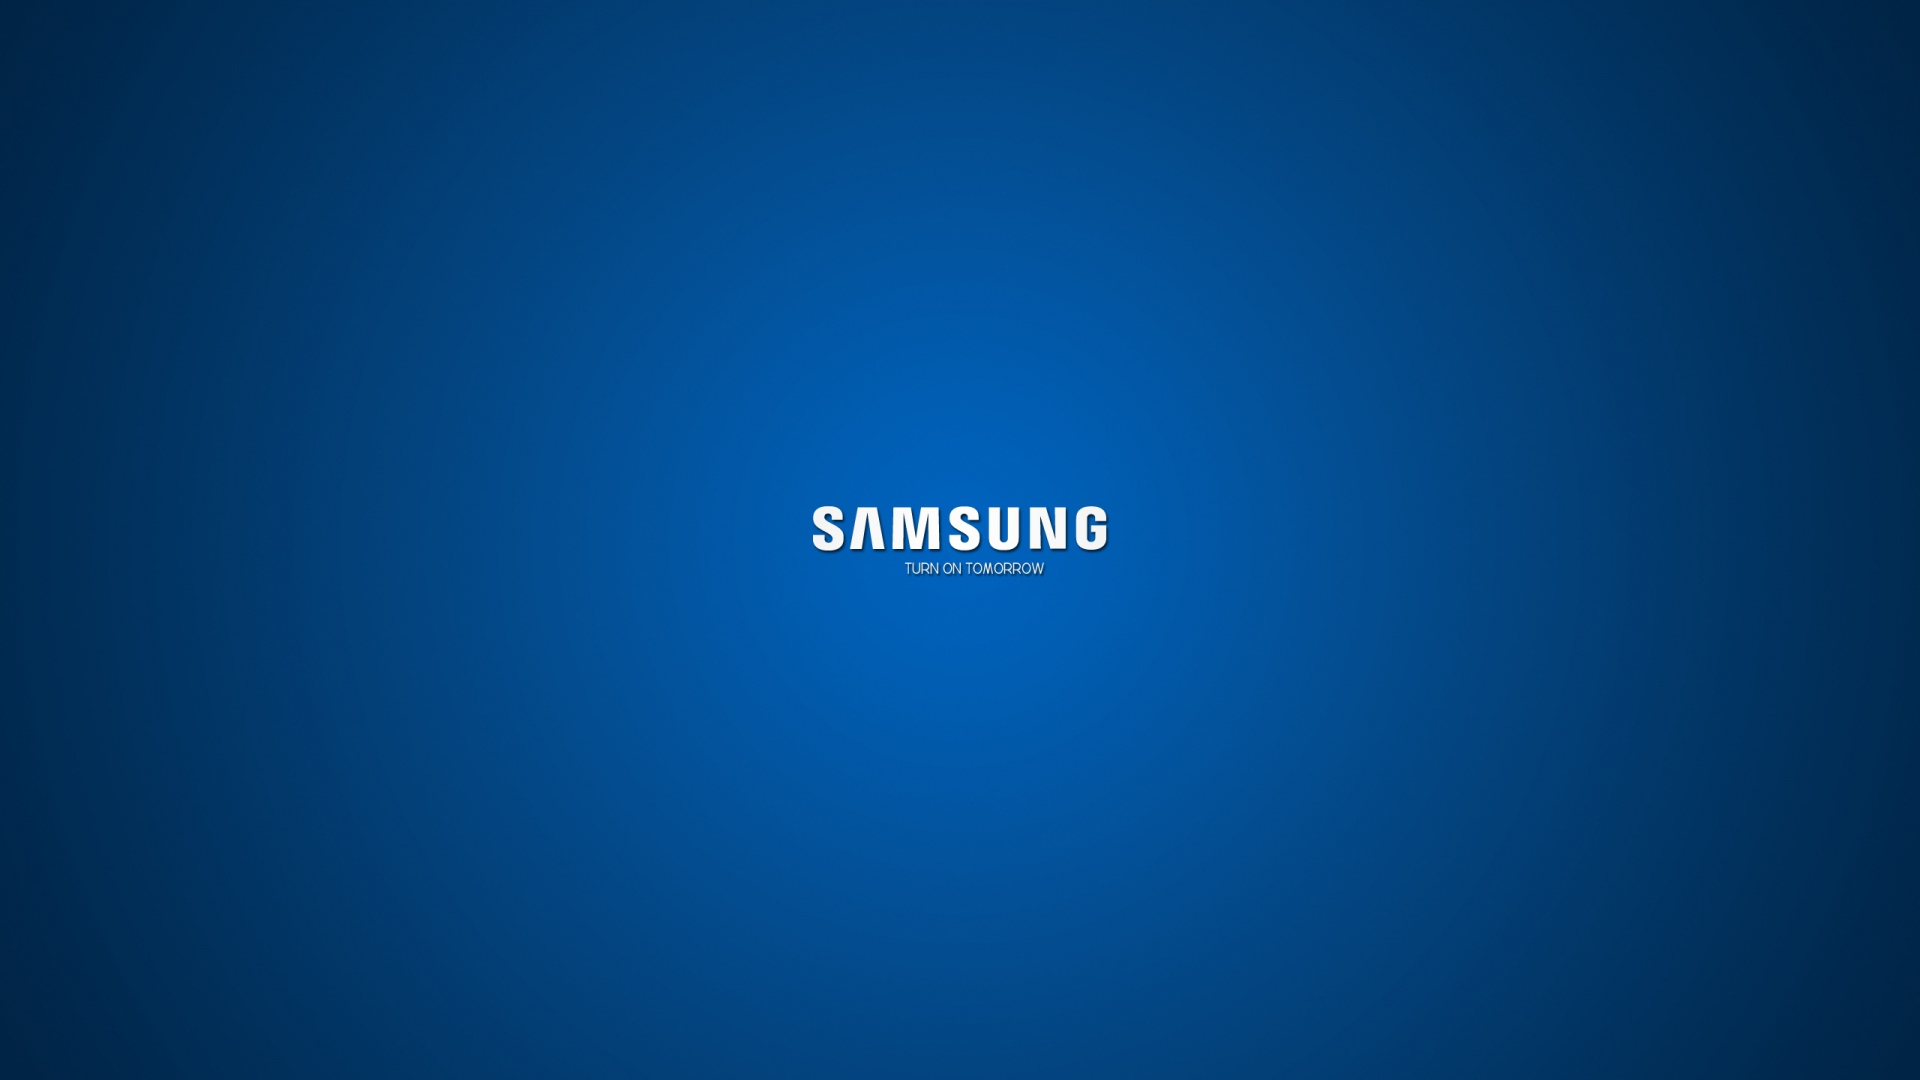 Wallpaper 1920x1080 Samsung Company Logo Blue White Full HD 1080p 1920x1080